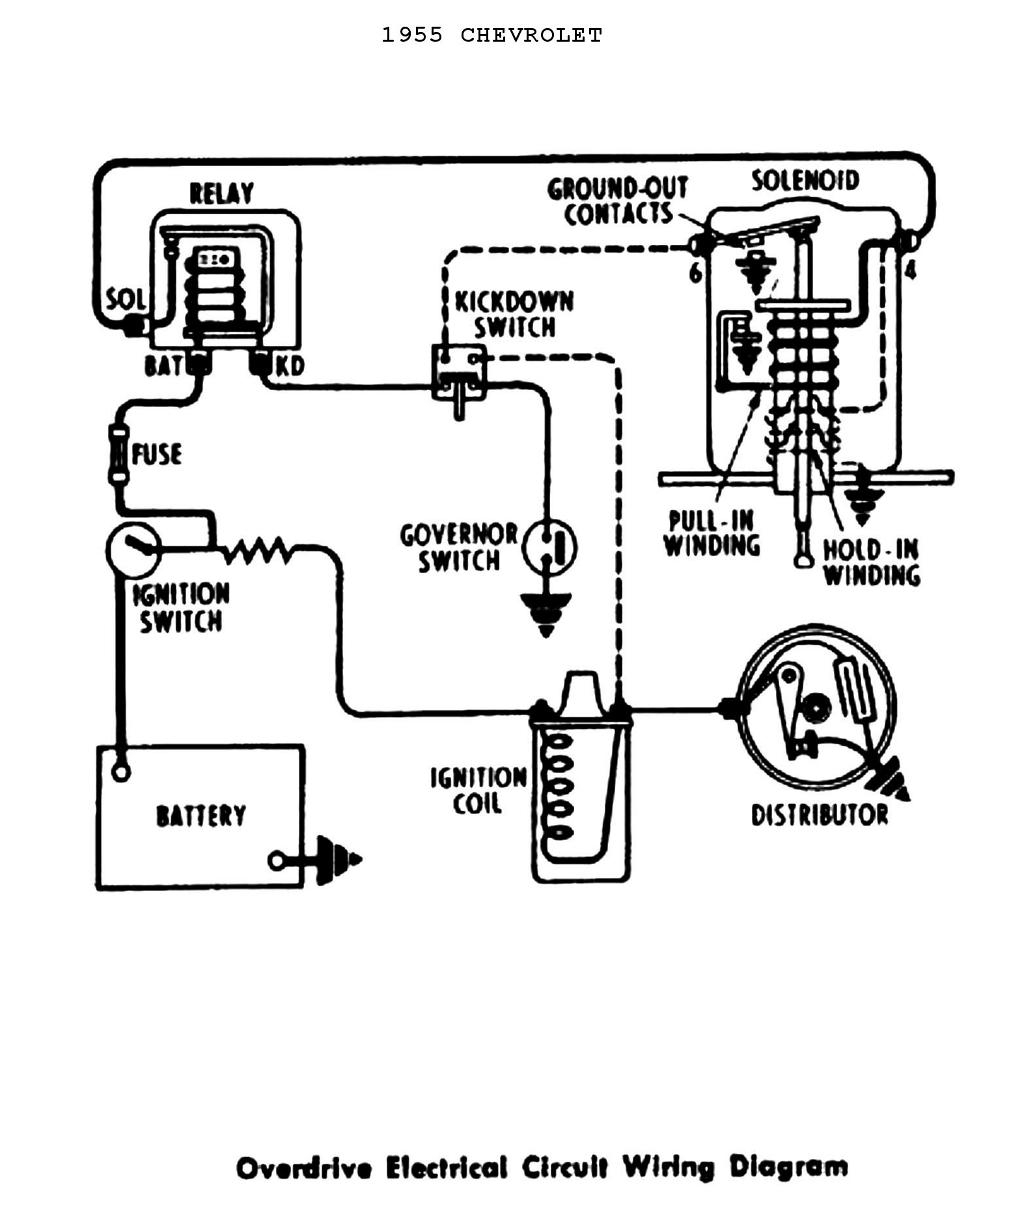 gm hei distributor wiring schematic | free wiring diagram gm distributor wiring diagram gm distributor wiring diagram 1970 pont #2